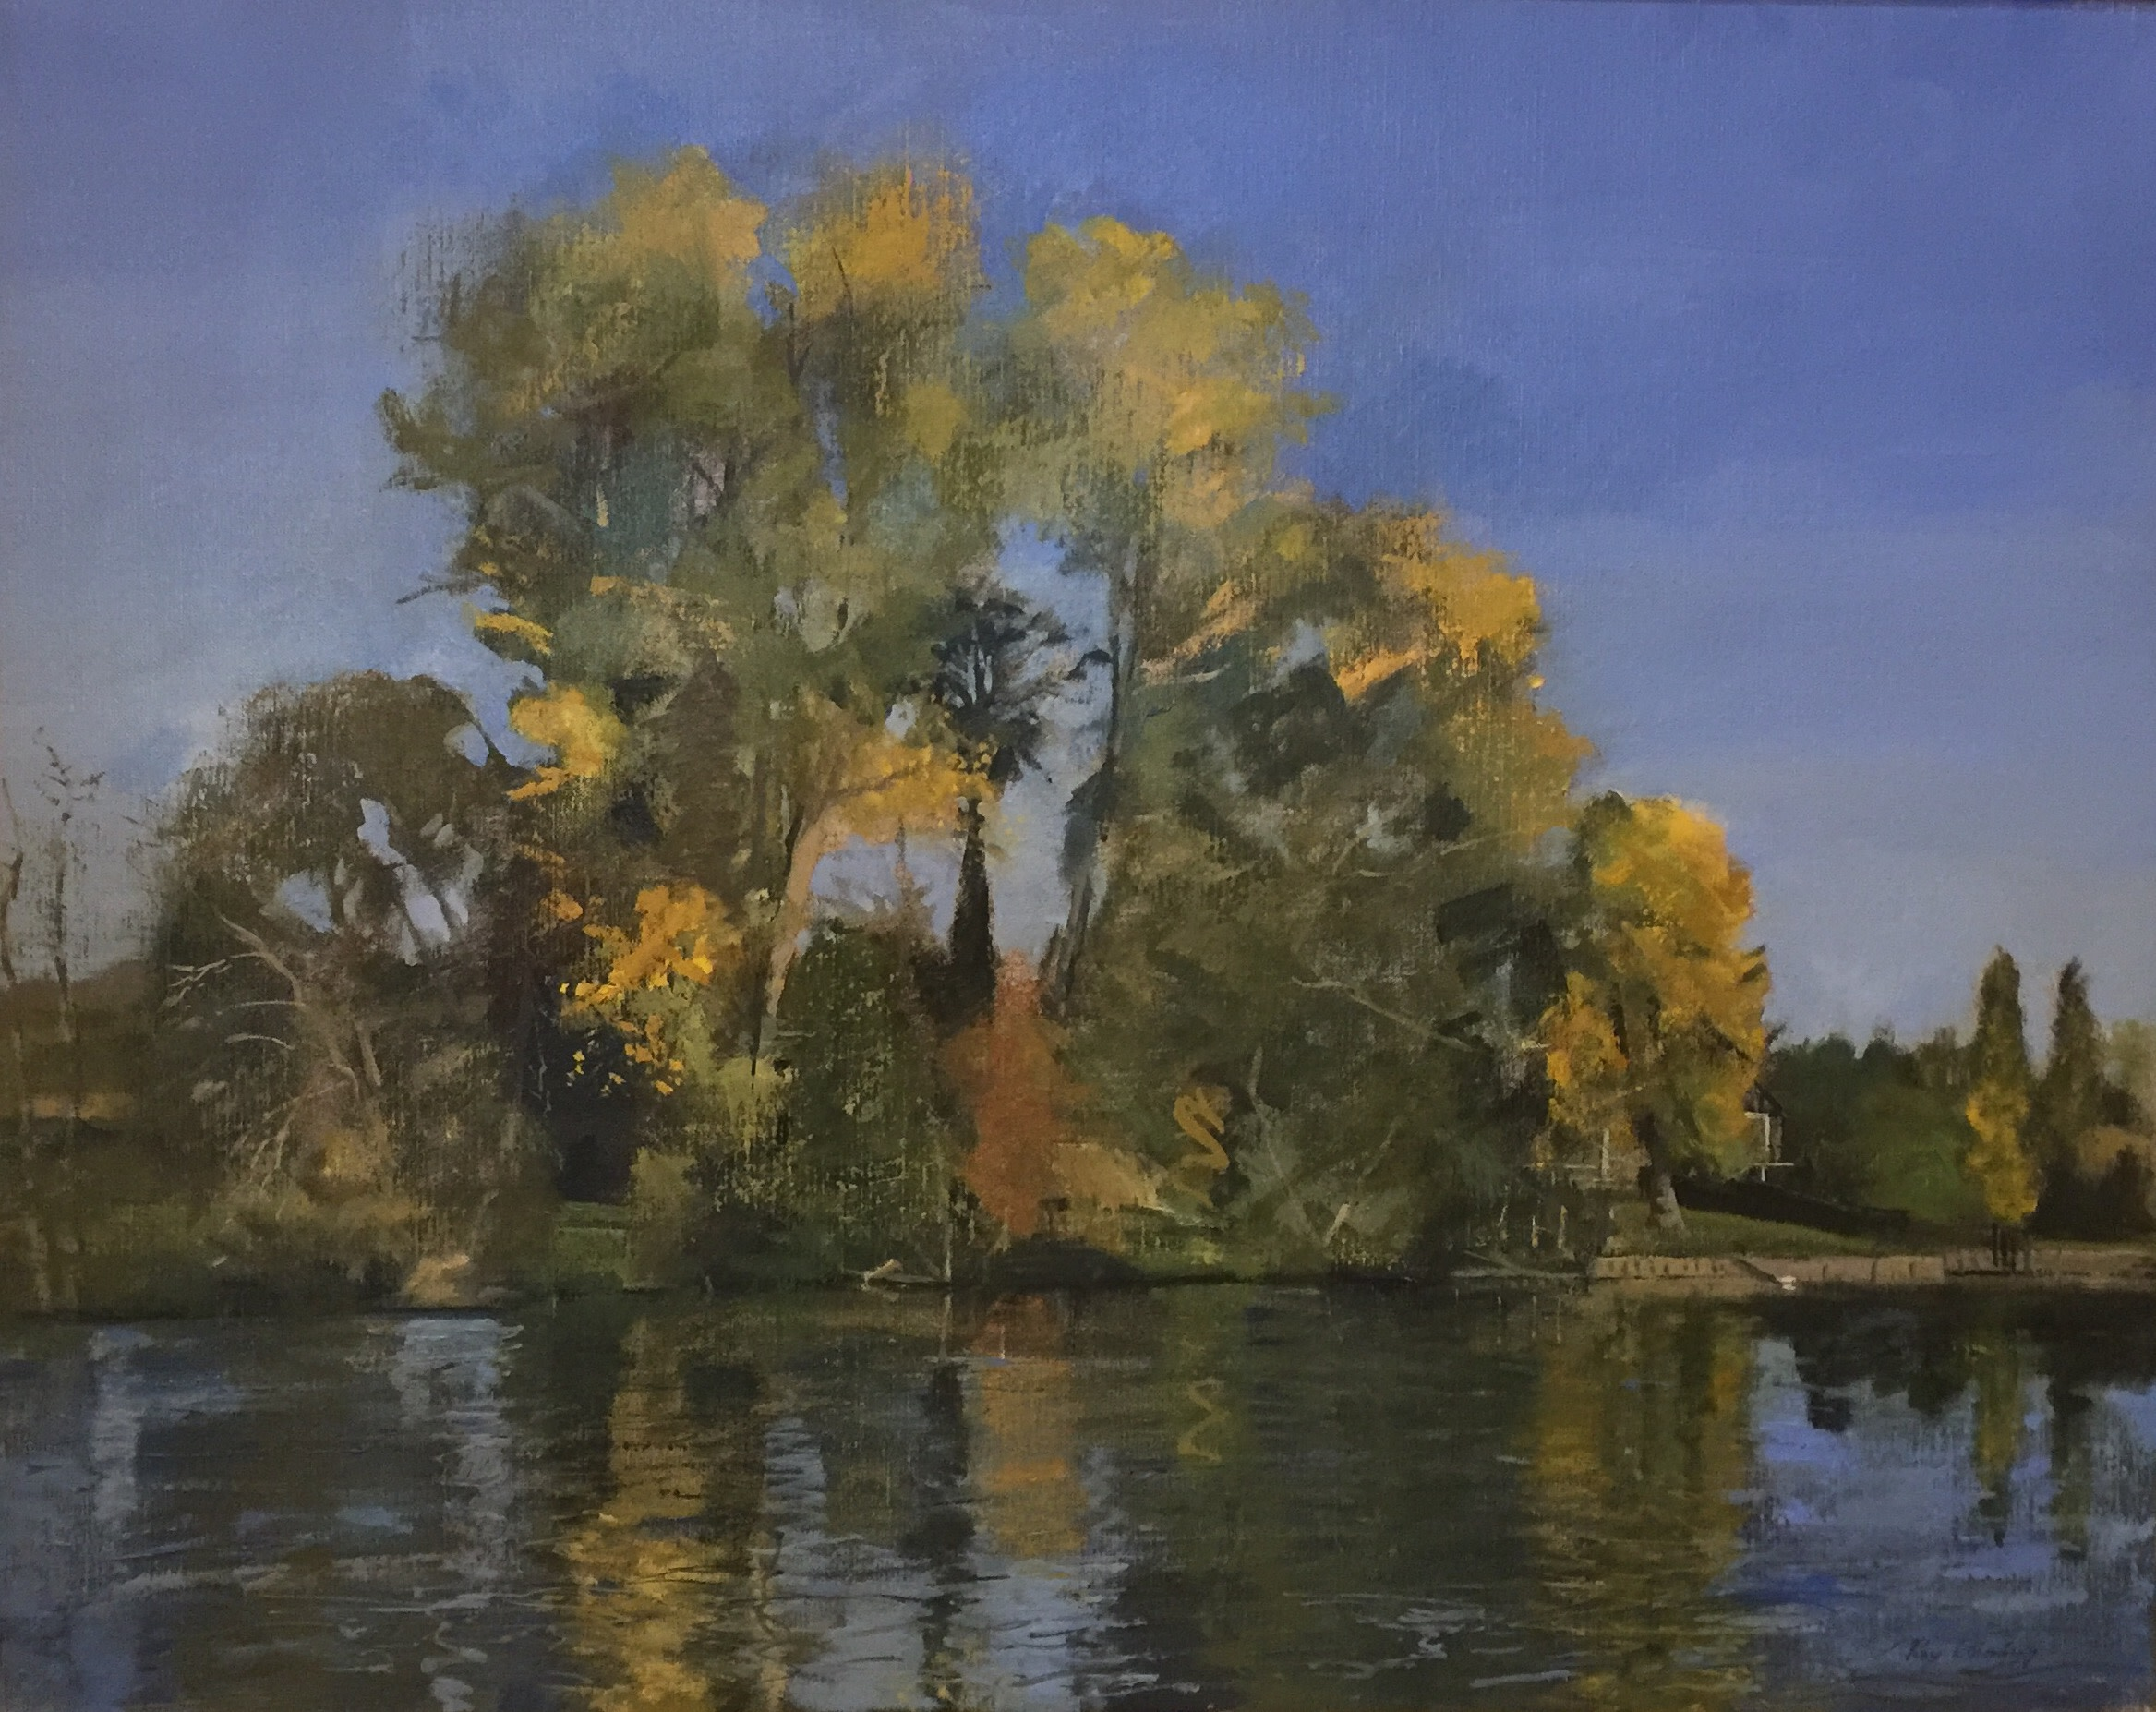 "<span class=""link fancybox-details-link""><a href=""/artists/63-roy-connelly/works/351-roy-connelly-river-thames-near-henley/"">View Detail Page</a></span><div class=""artist""><strong>Roy Connelly</strong></div> <div class=""title""><em>River Thames near Henley</em></div> <div class=""medium"">Oil on Canvas</div> <div class=""dimensions"">77 x 92 cm framed</div><div class=""price"">£2,200.00</div>"